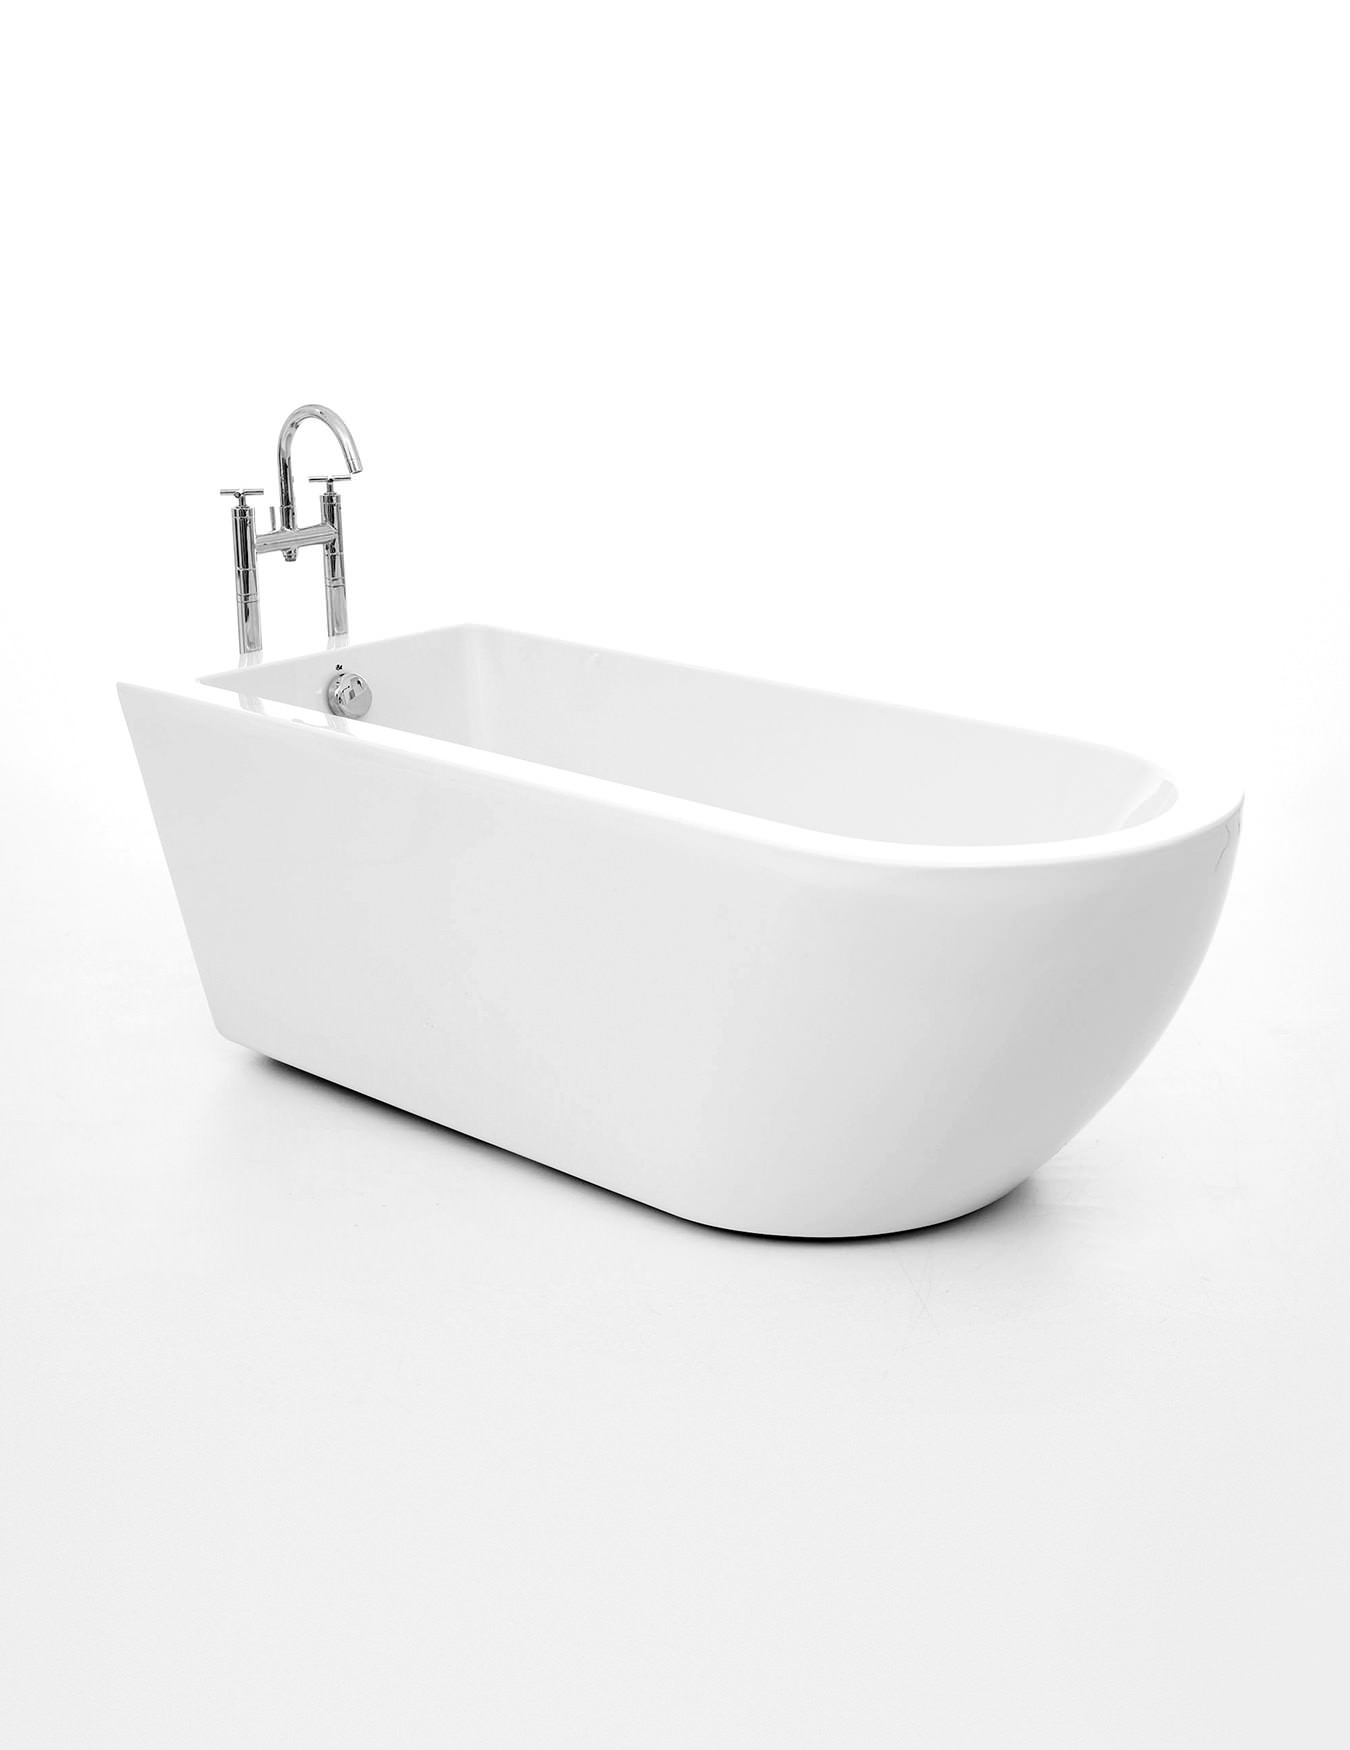 Royce Morgan Barwick Single Ended Freestanding Bath 1690 X